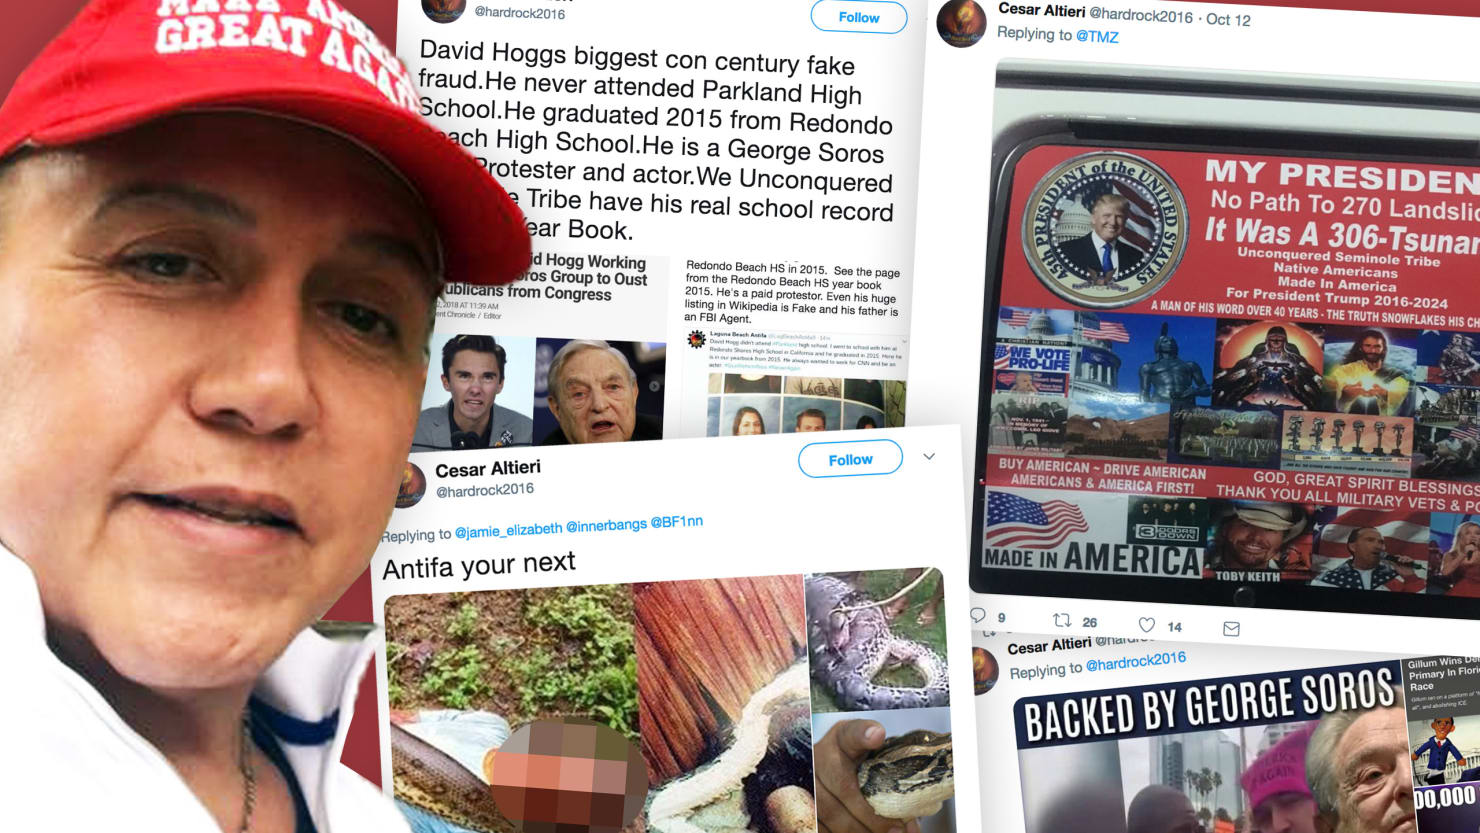 Trump Supporter Arrested in Connection with Mail Bombs Targeting Trump Critics